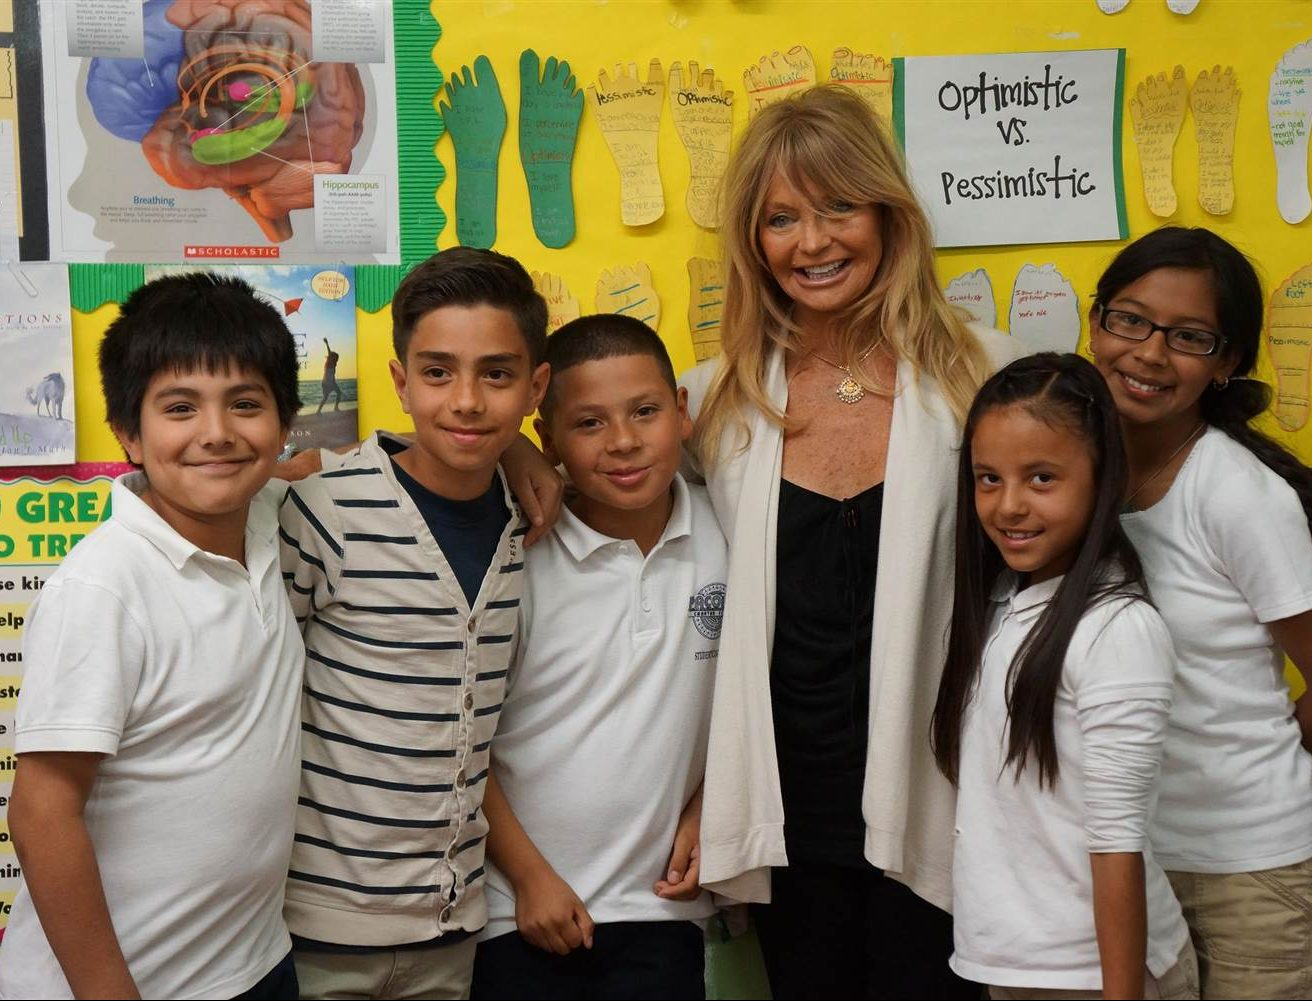 141119 goldie hawn students aro 225p 801a11842f7da4304c86eead36902339.nbcnews ux 2880 1000 e1605869483104 10 Things You Never Knew About Goldie Hawn